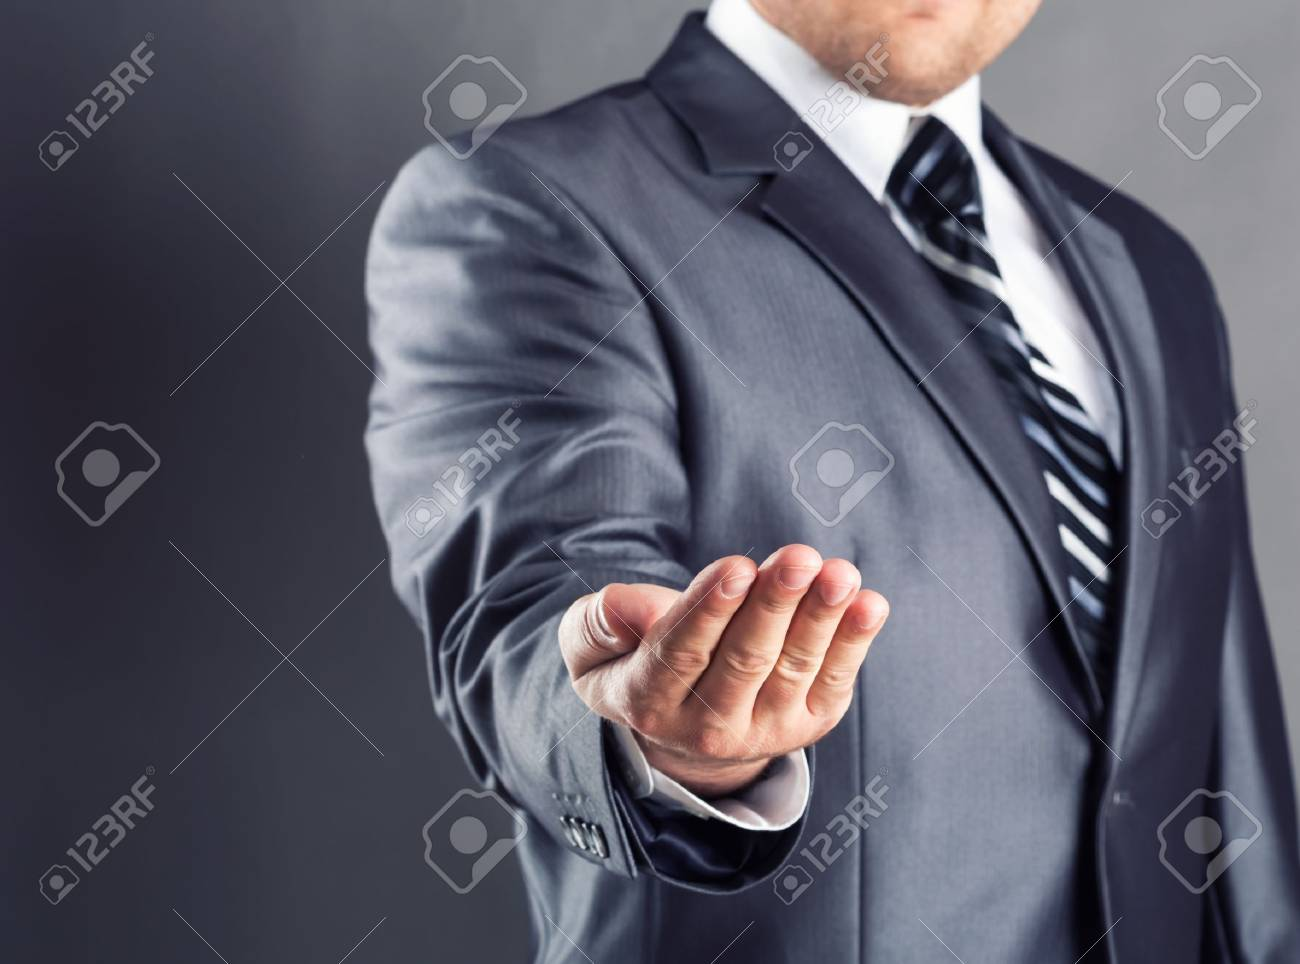 Unrecognizable businessman asking for bailout Stock Photo - 18954735